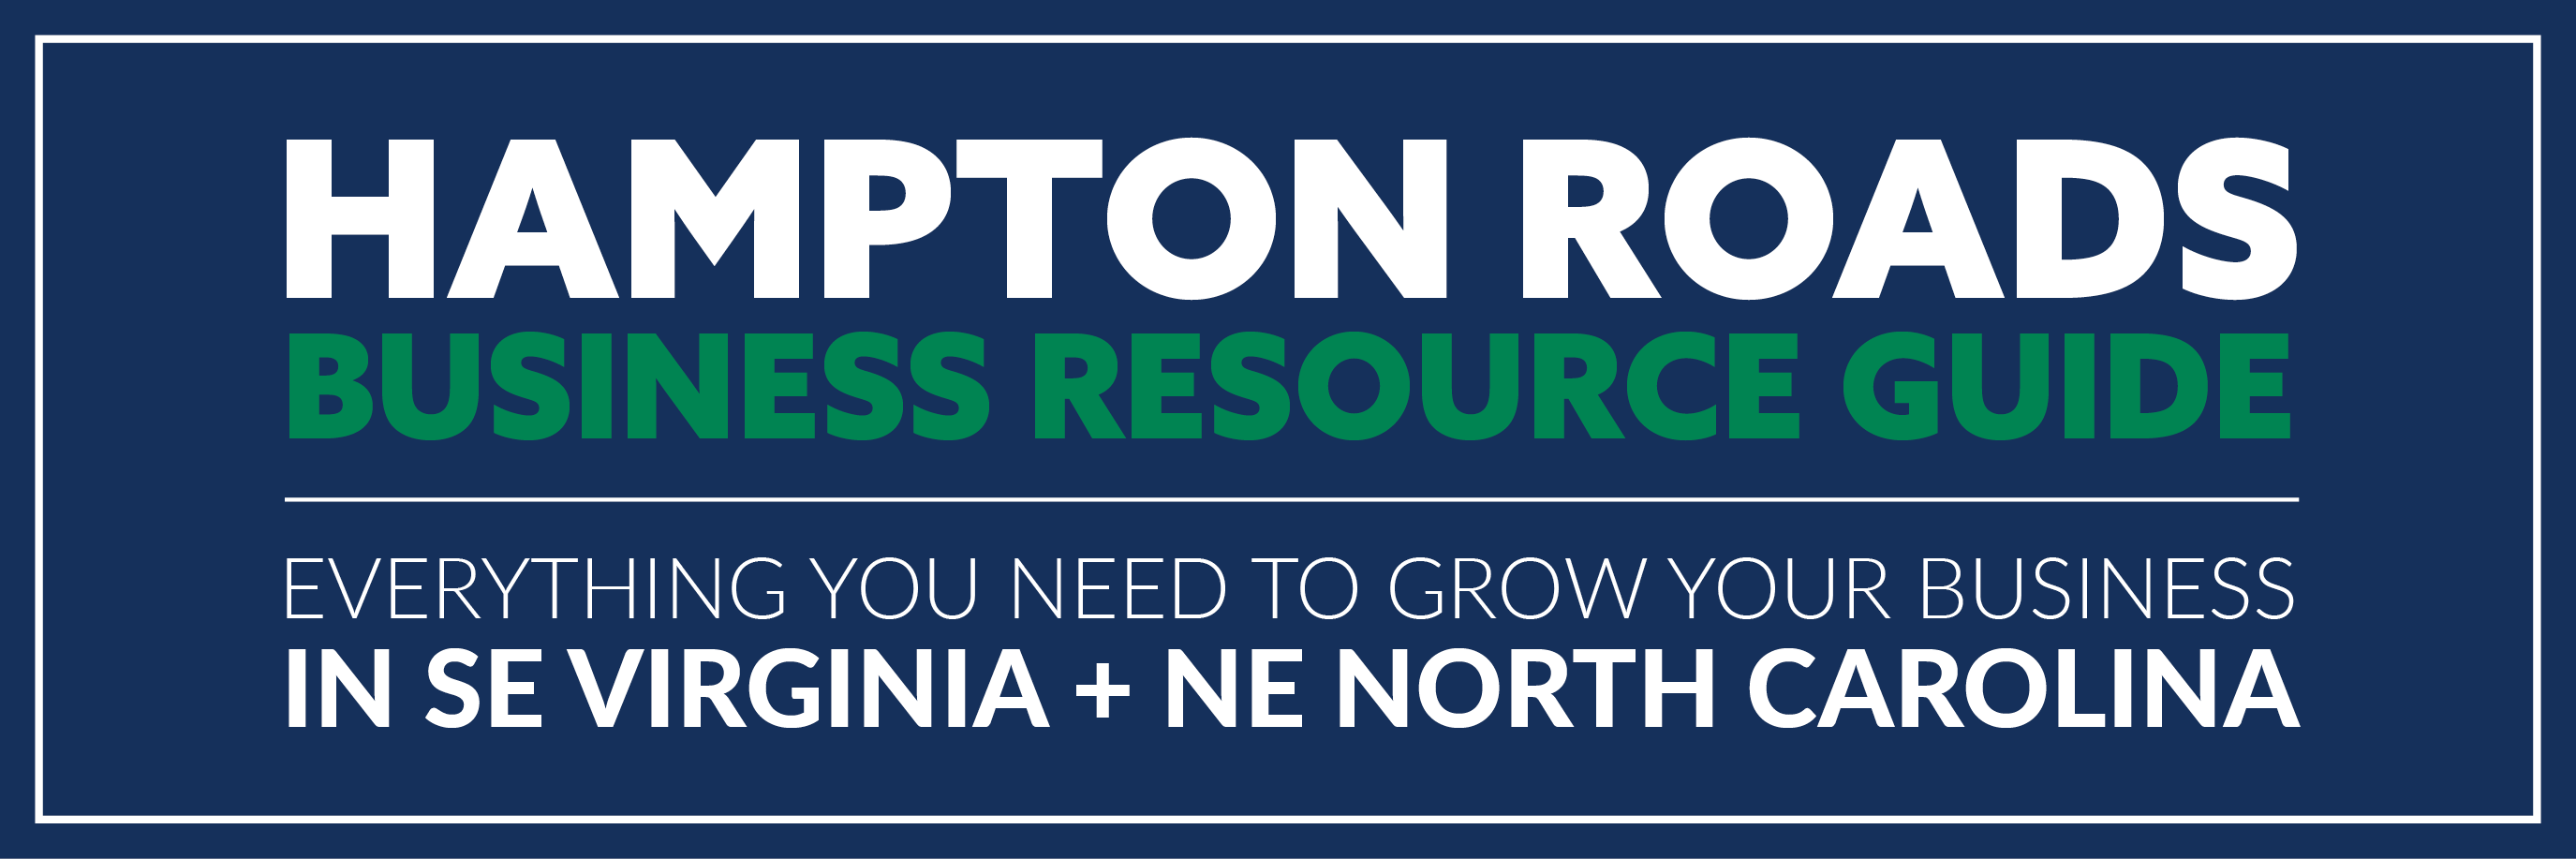 2020 Hampton Roads Business Resource Guide 004